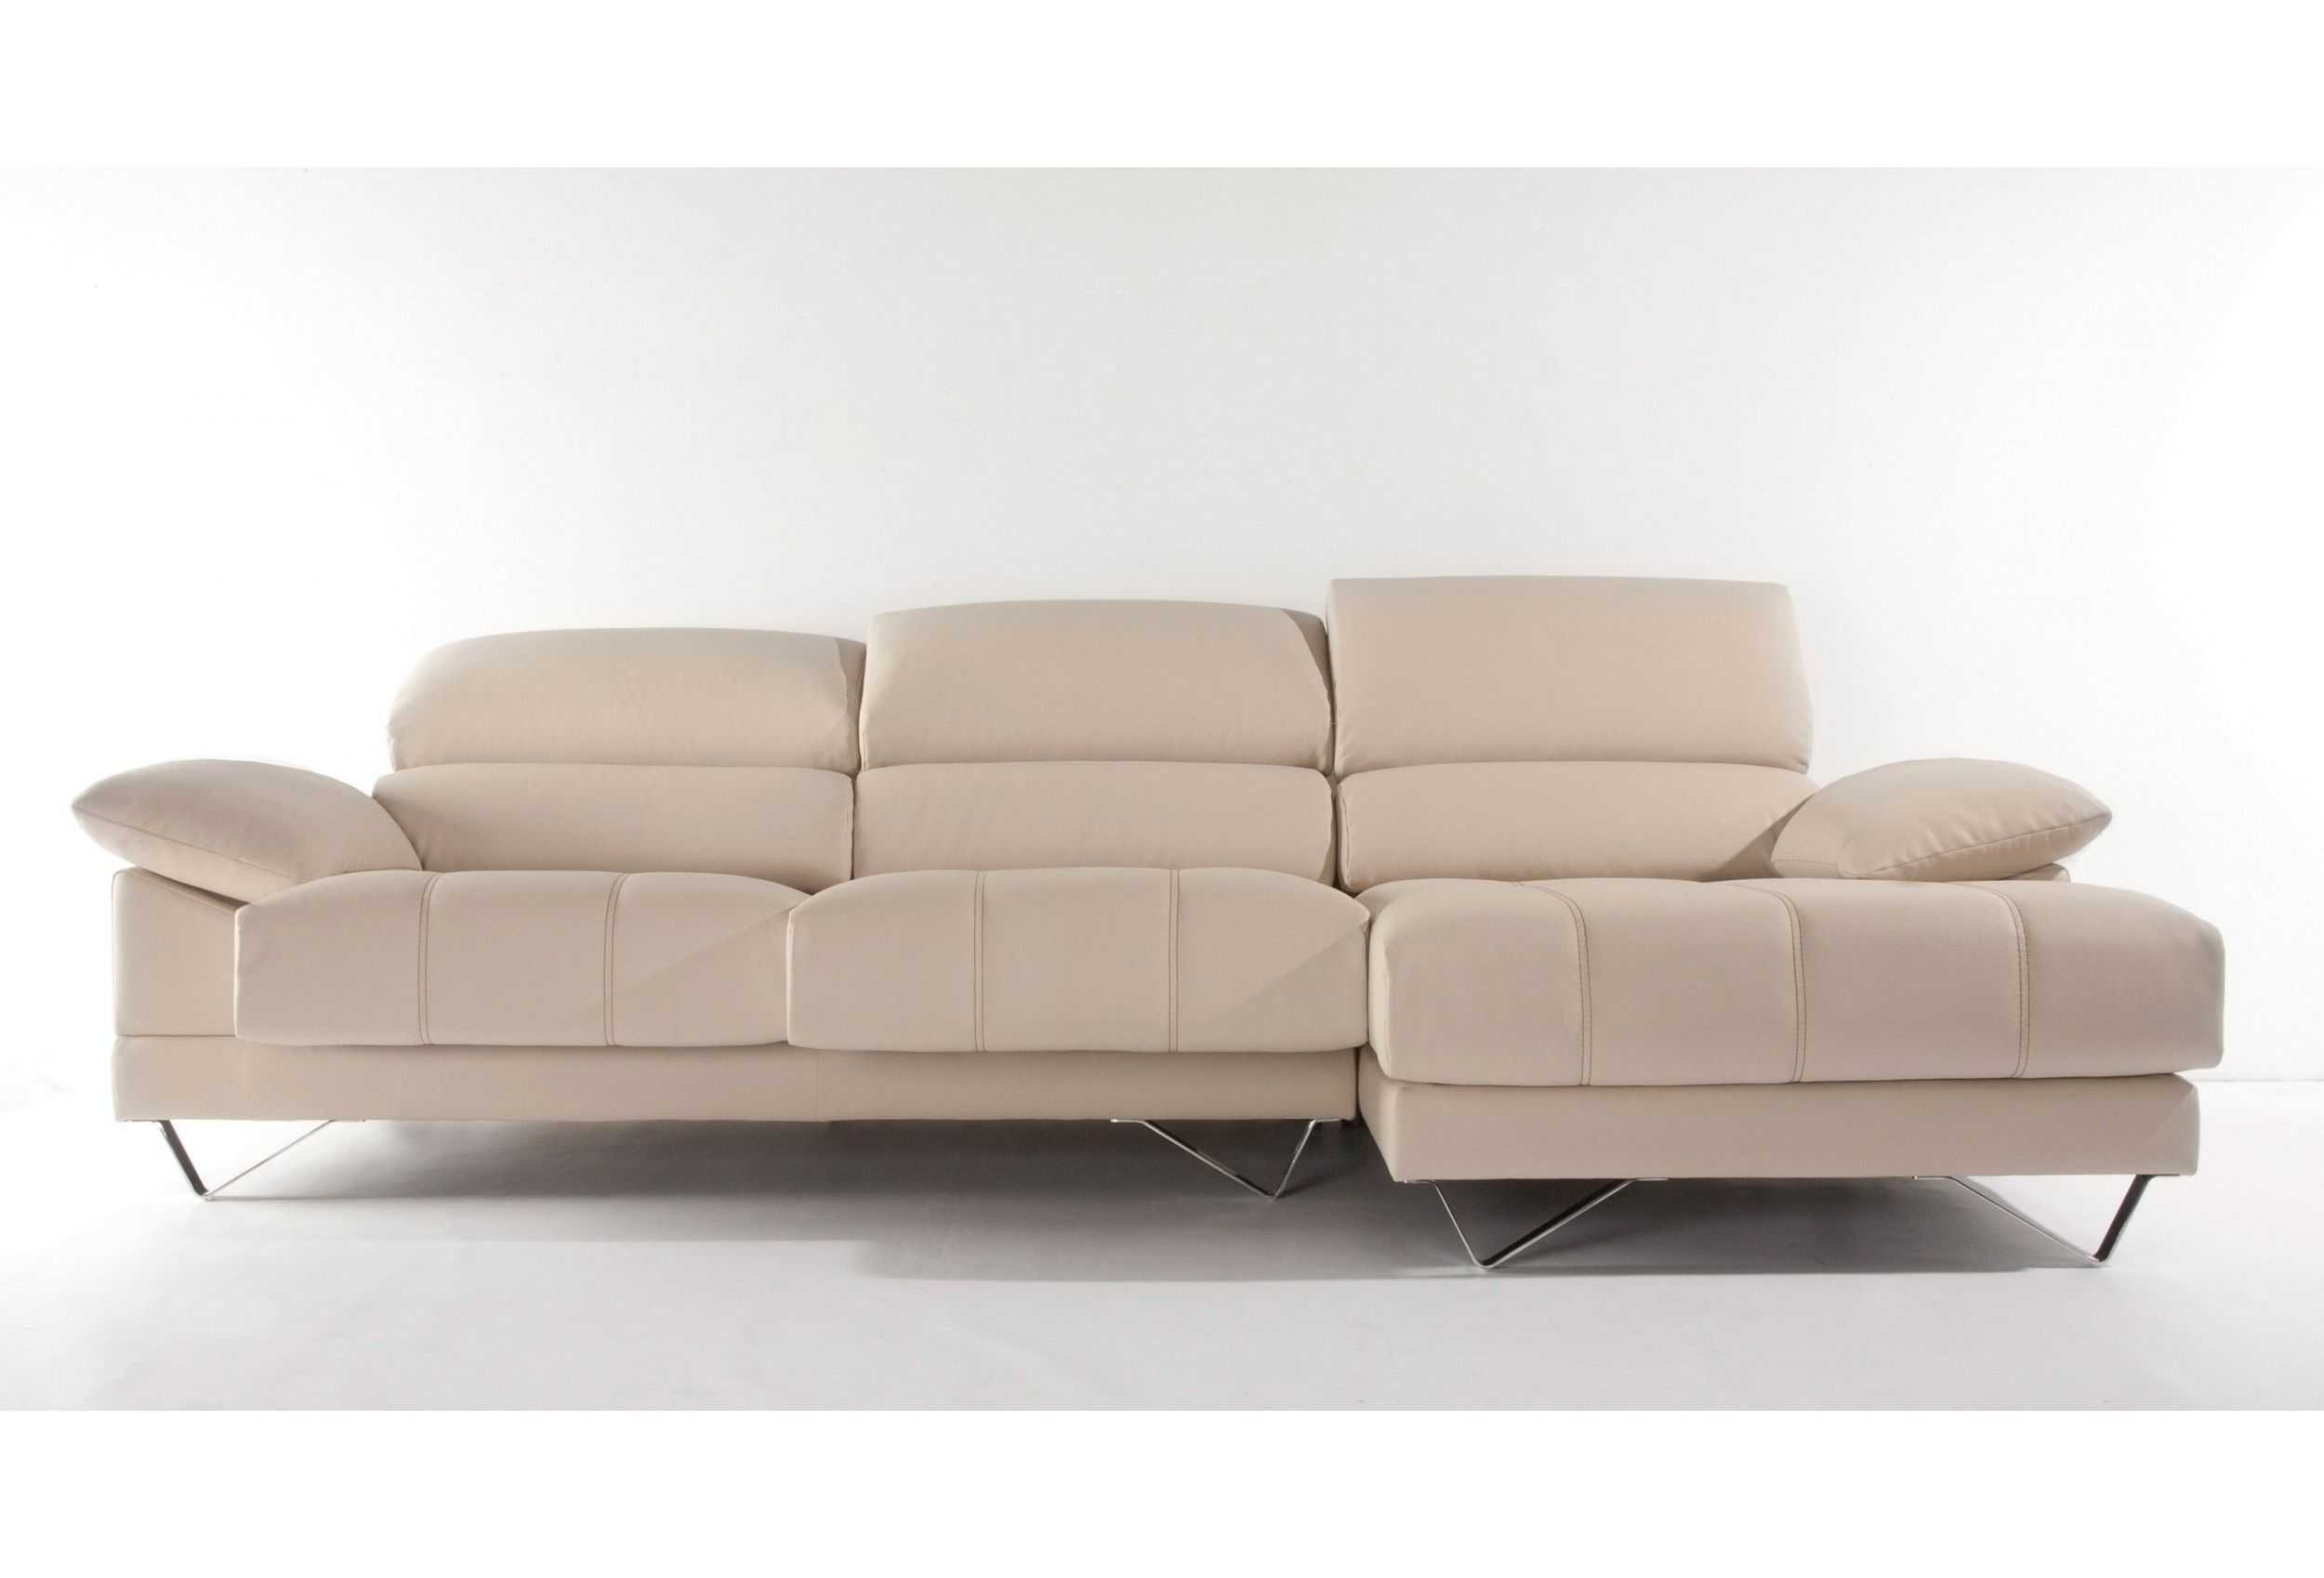 Sofas chaise longue madrid great sofs chaise longue - Sofas relax madrid ...